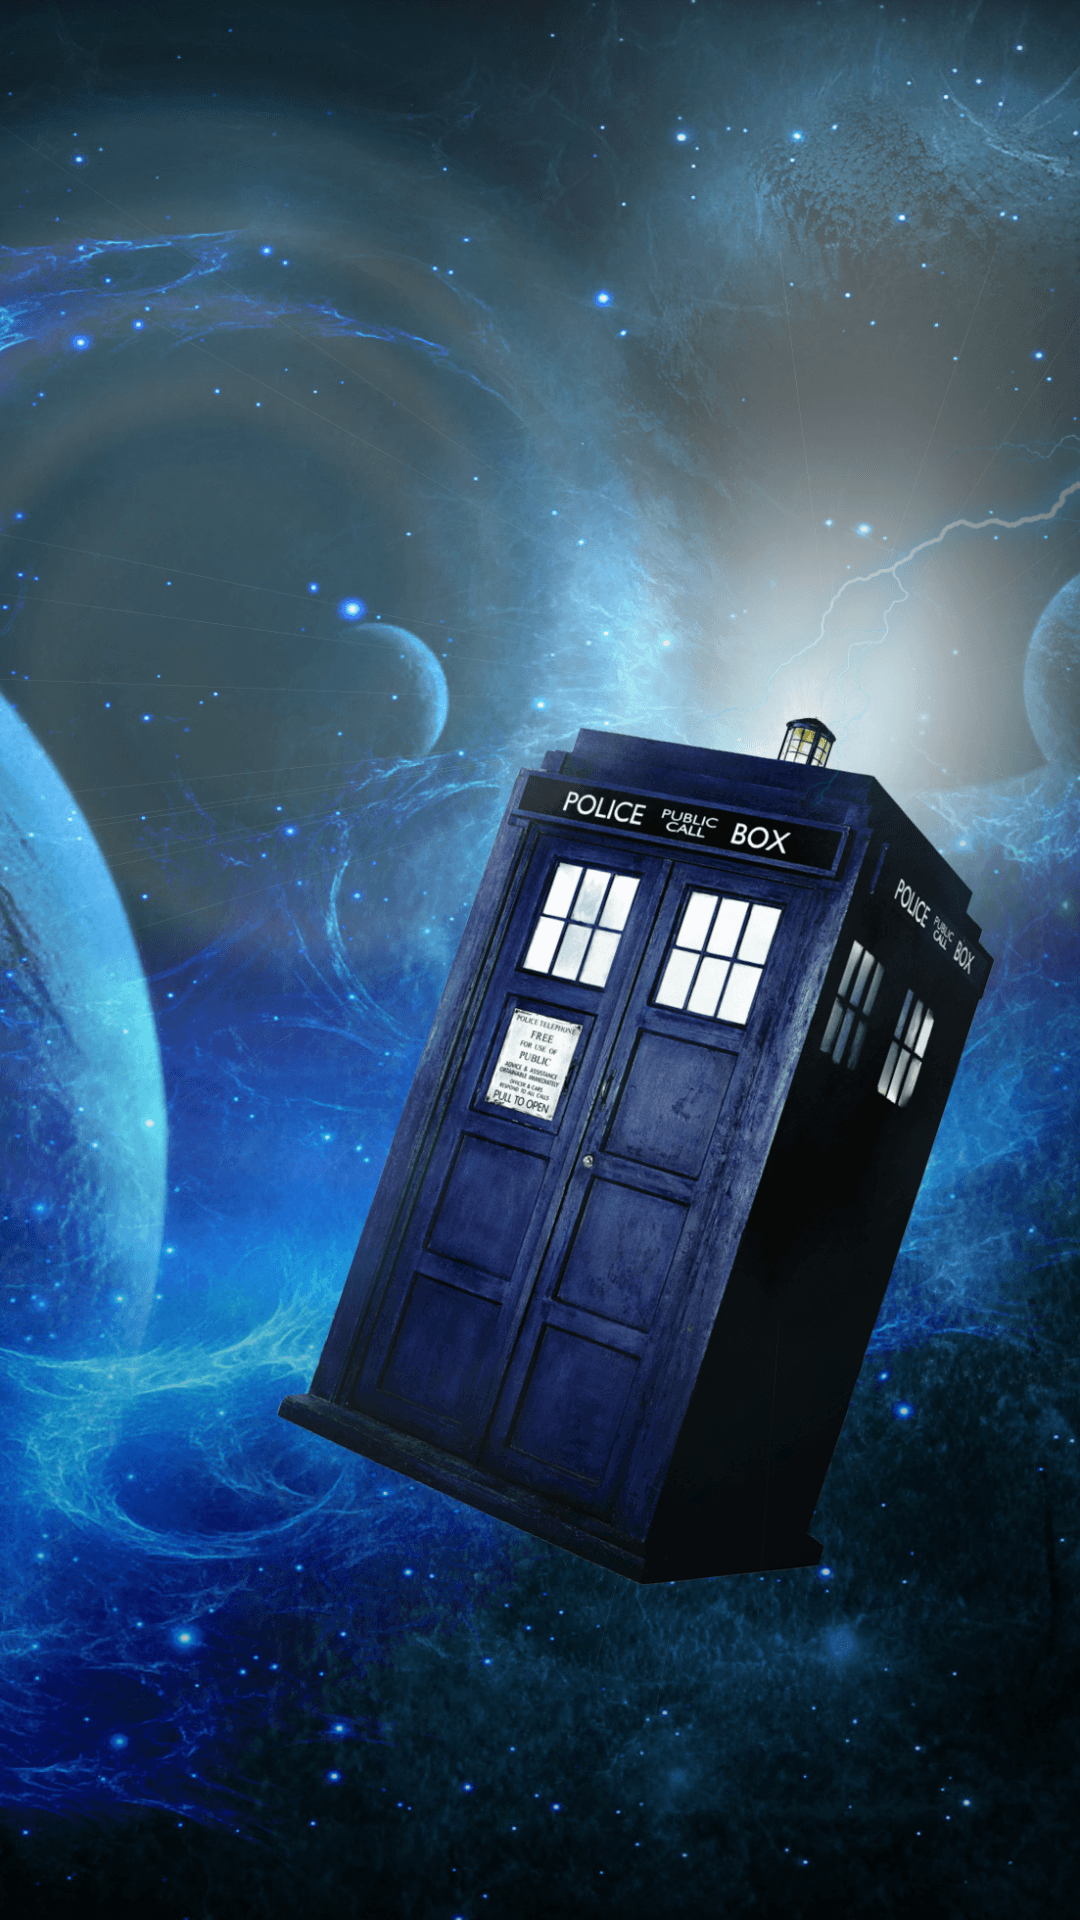 Dr Who Iphone Wallpapers Top Free Dr Who Iphone Backgrounds Wallpaperaccess